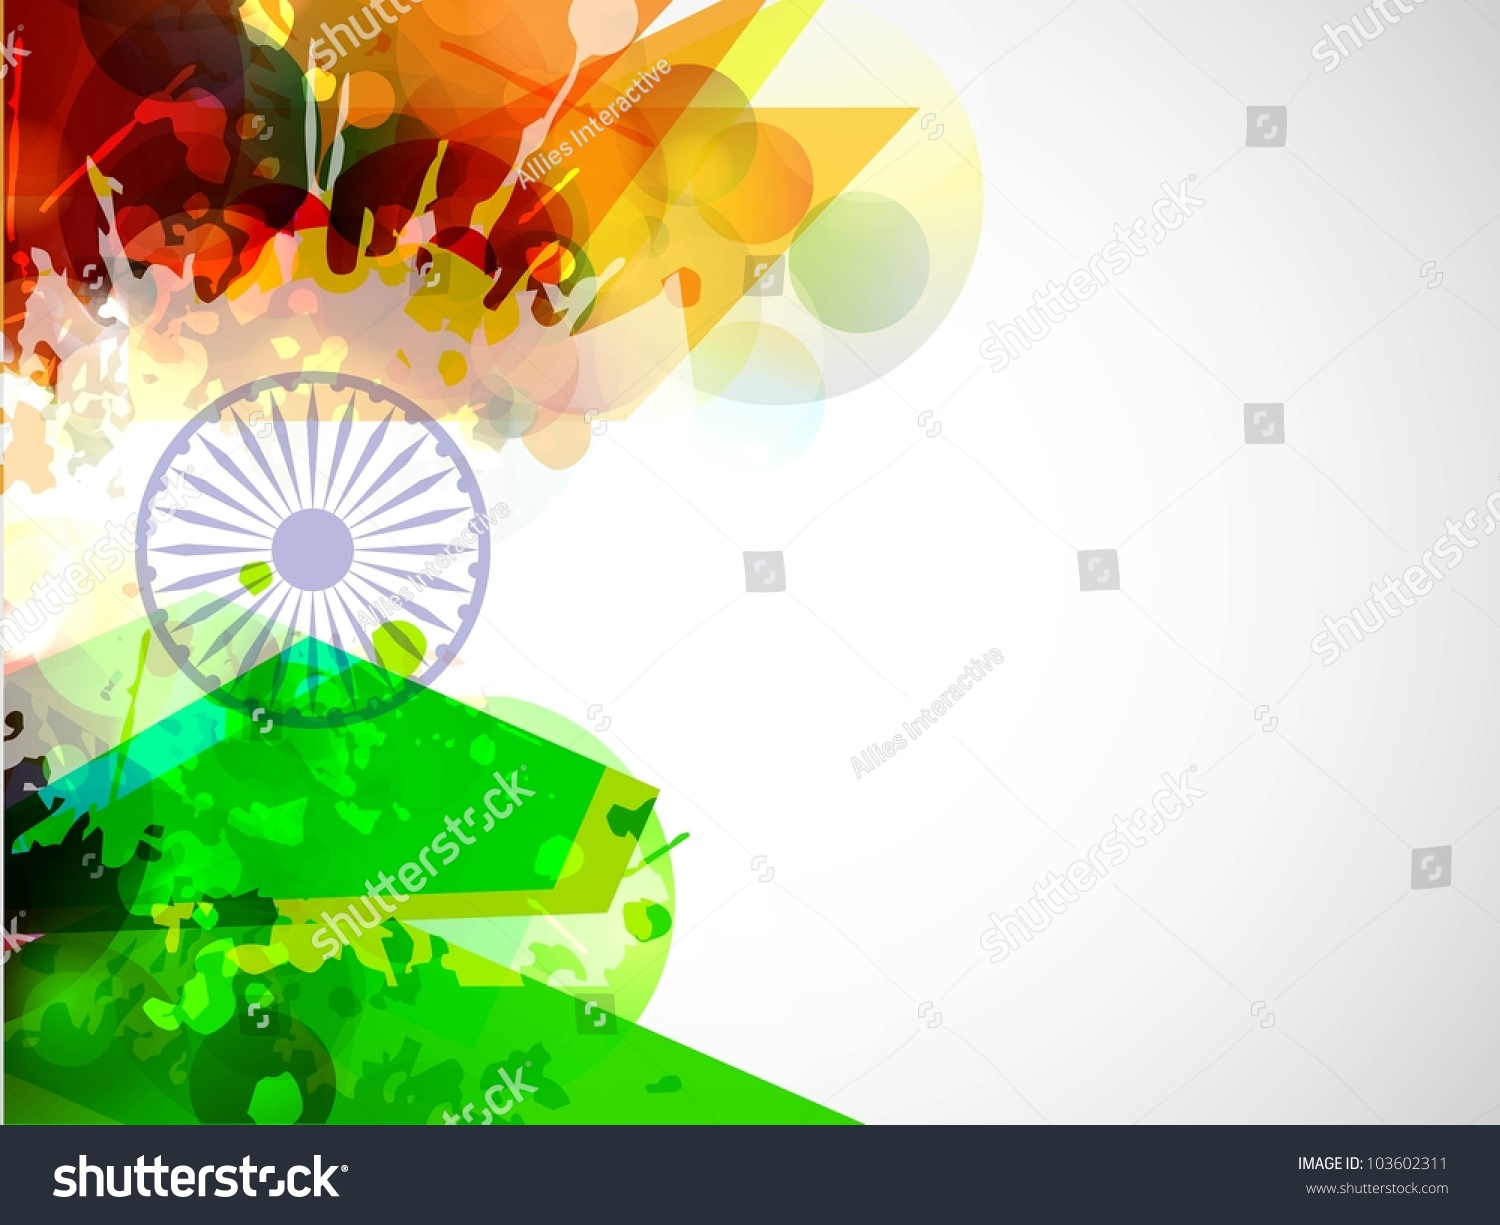 Creative Watercolor Indian Flag Background For Indian: Creative Indian Flag Color Background Wave Stock Vektor